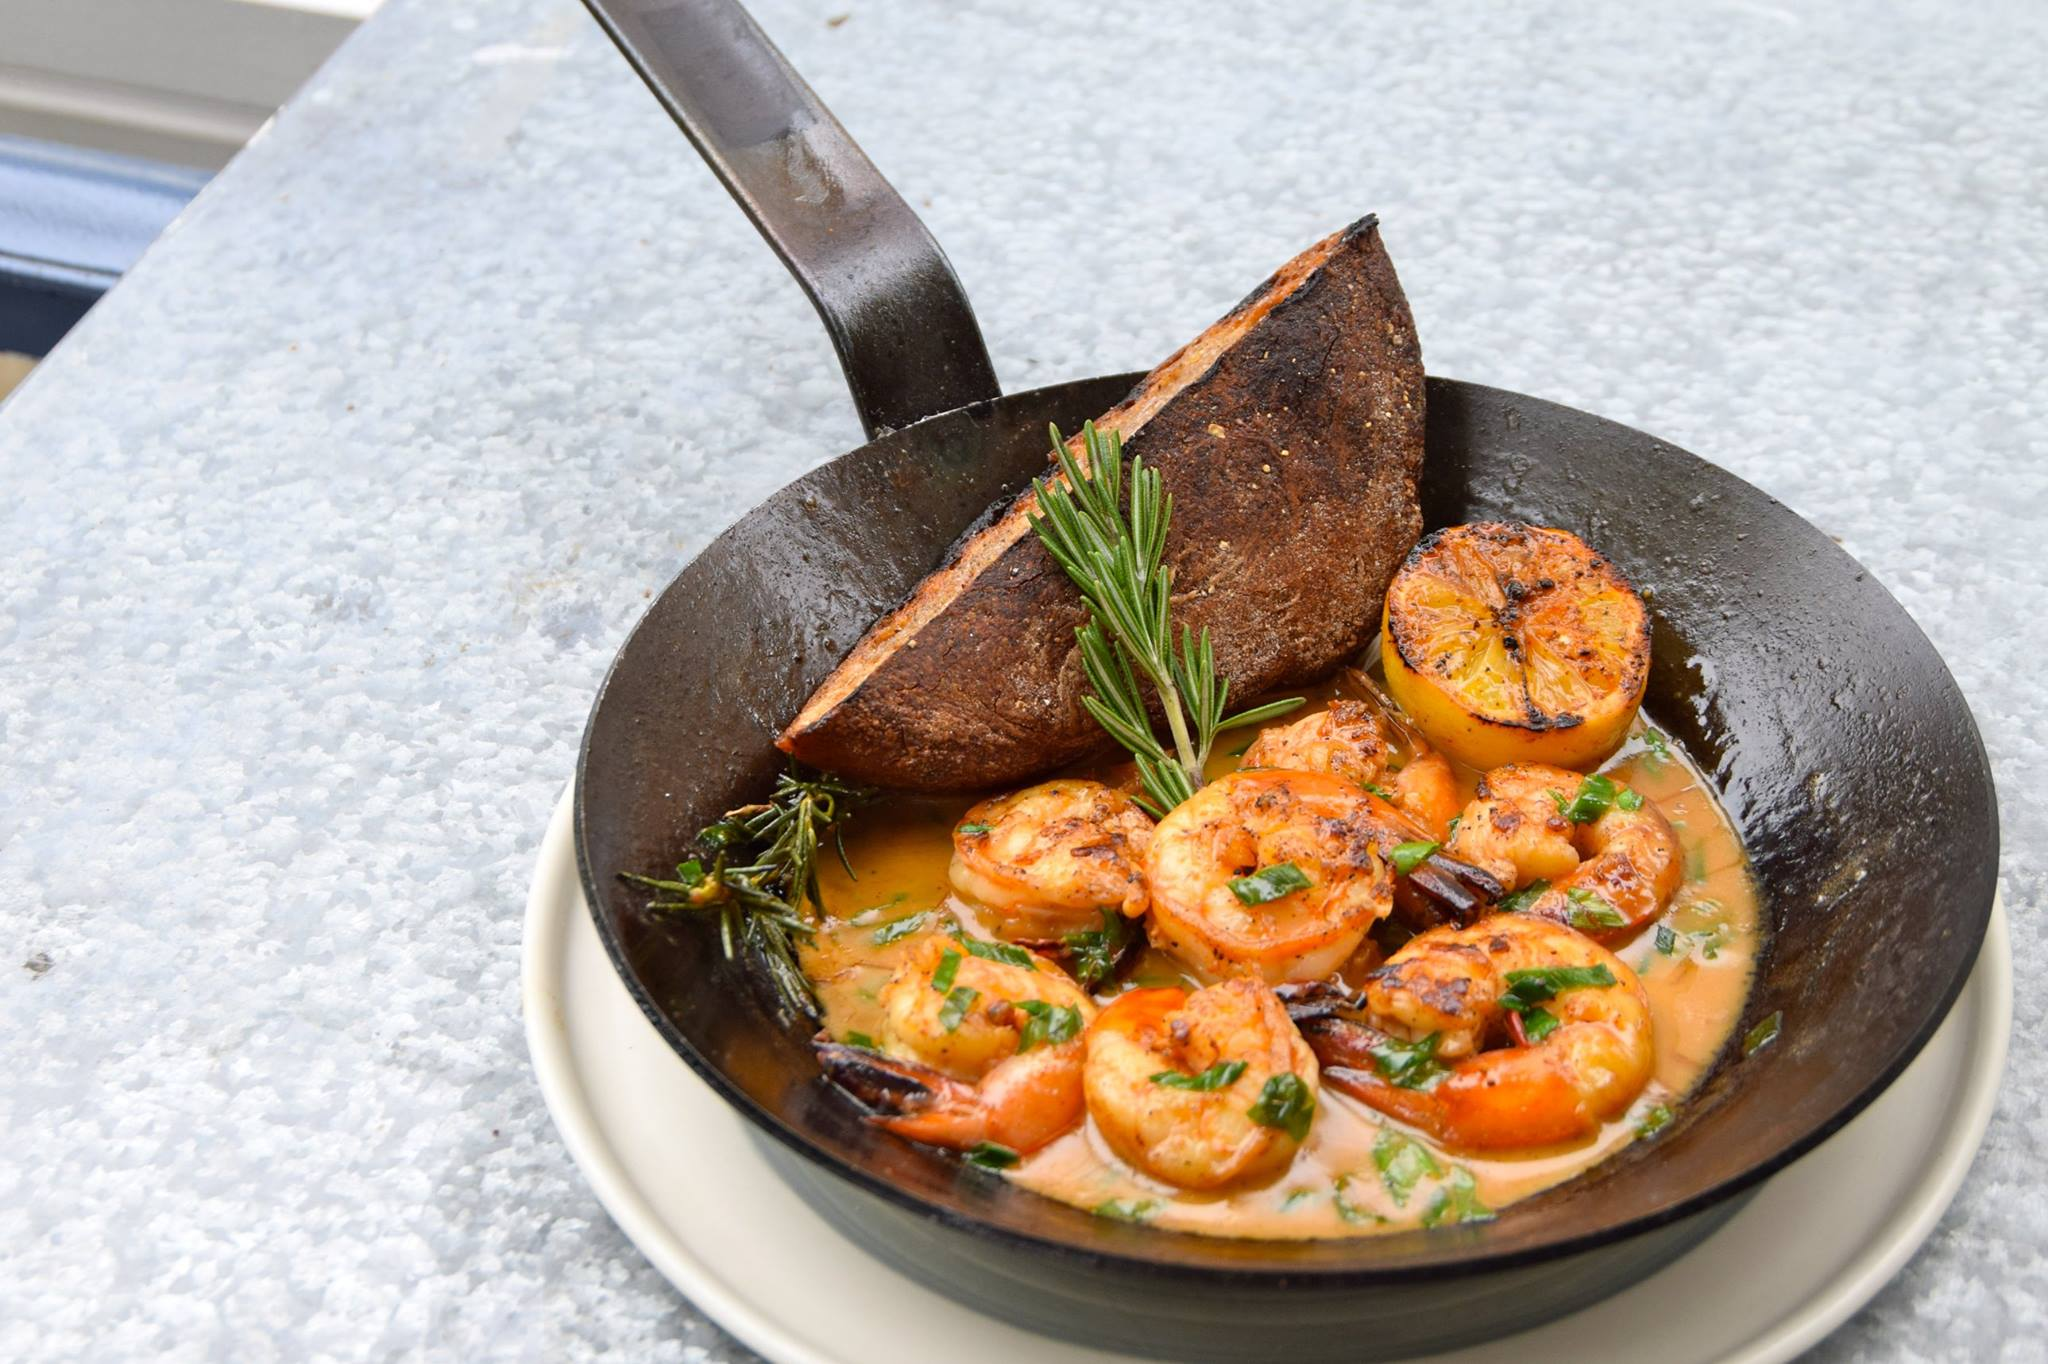 Top 5 Mother's Day Brunch Spots in New Orleans